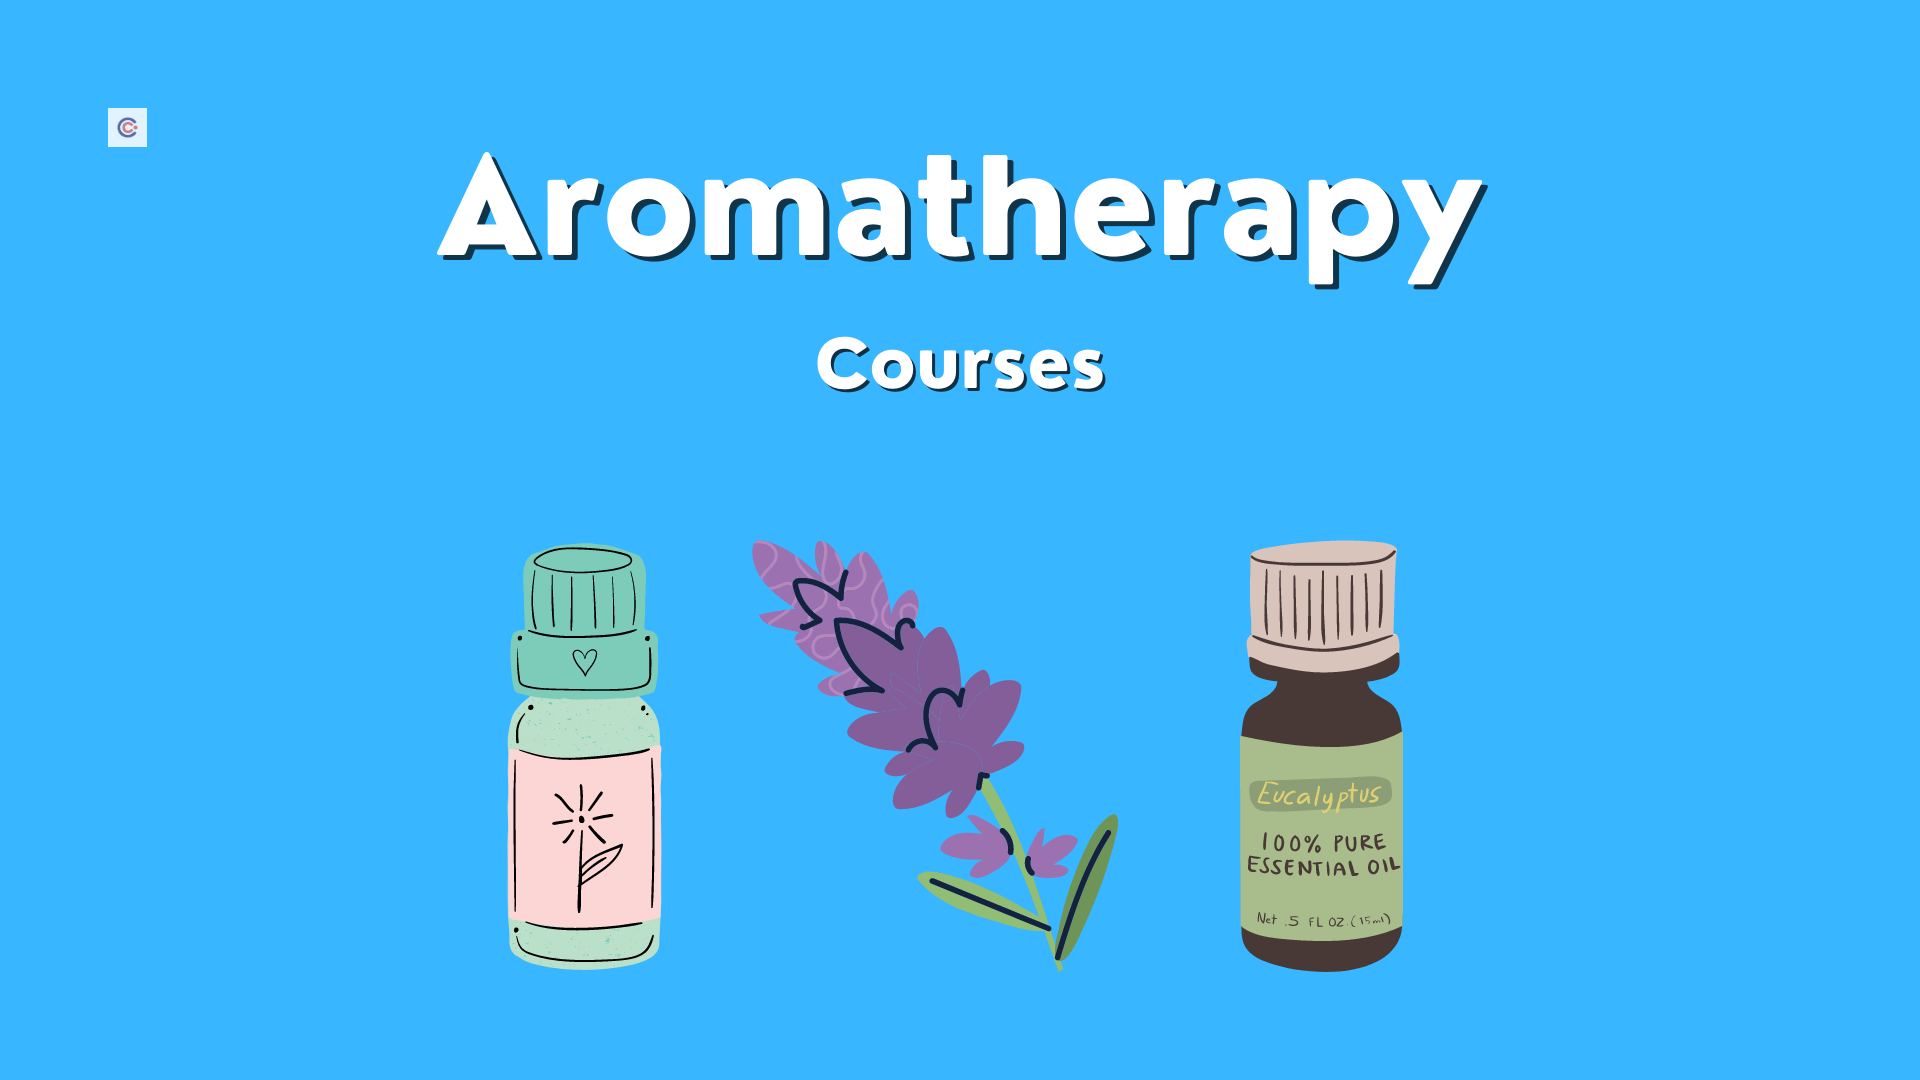 5 Best Aromatherapy Courses - Learn Aromatherapy Online